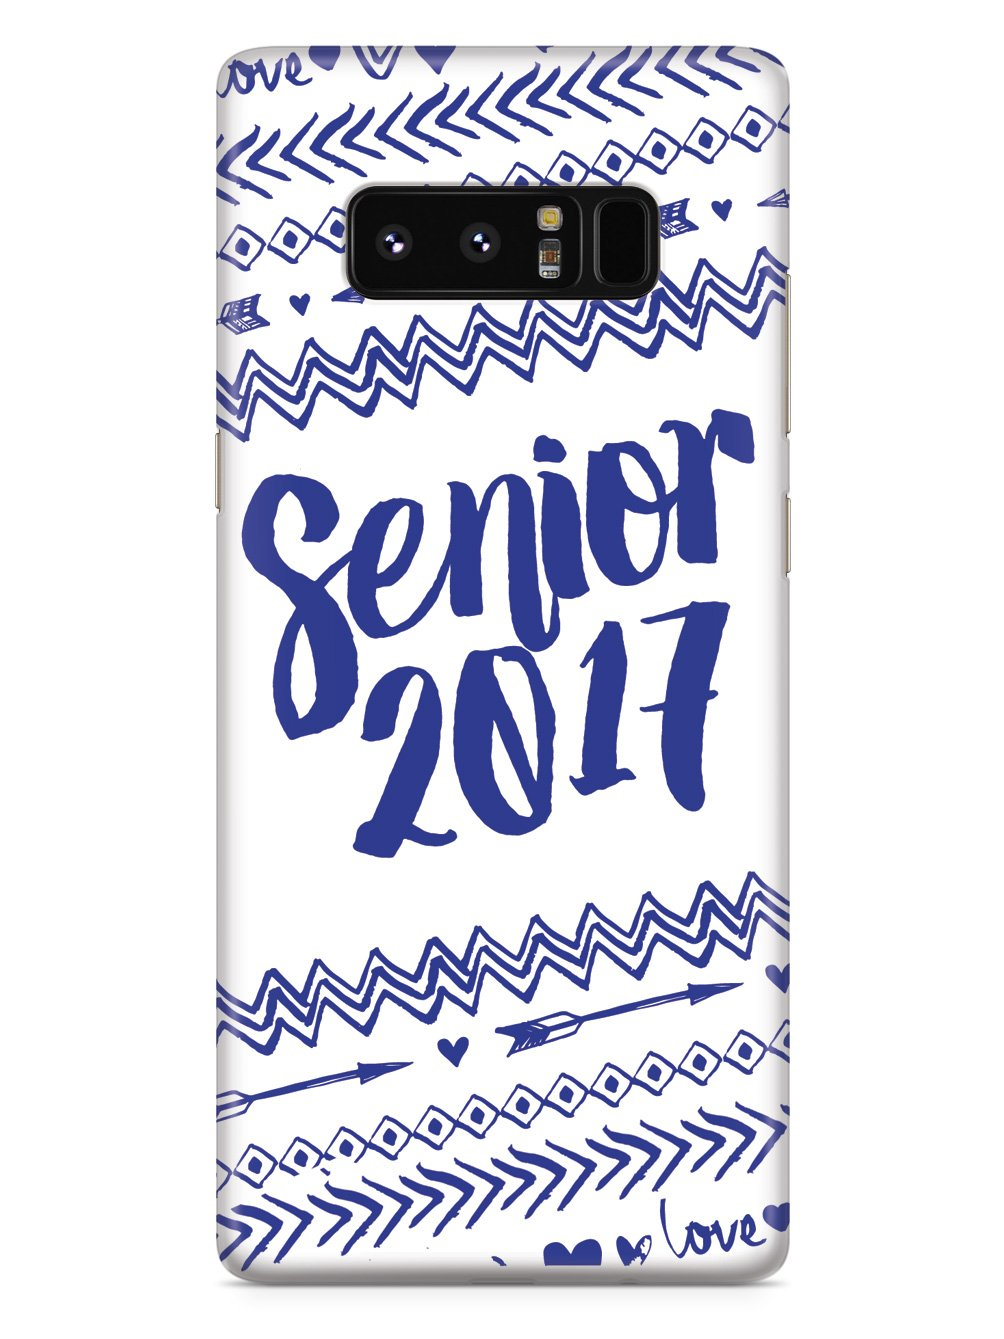 Senior 2017 - Blue Case - pipercleo.com